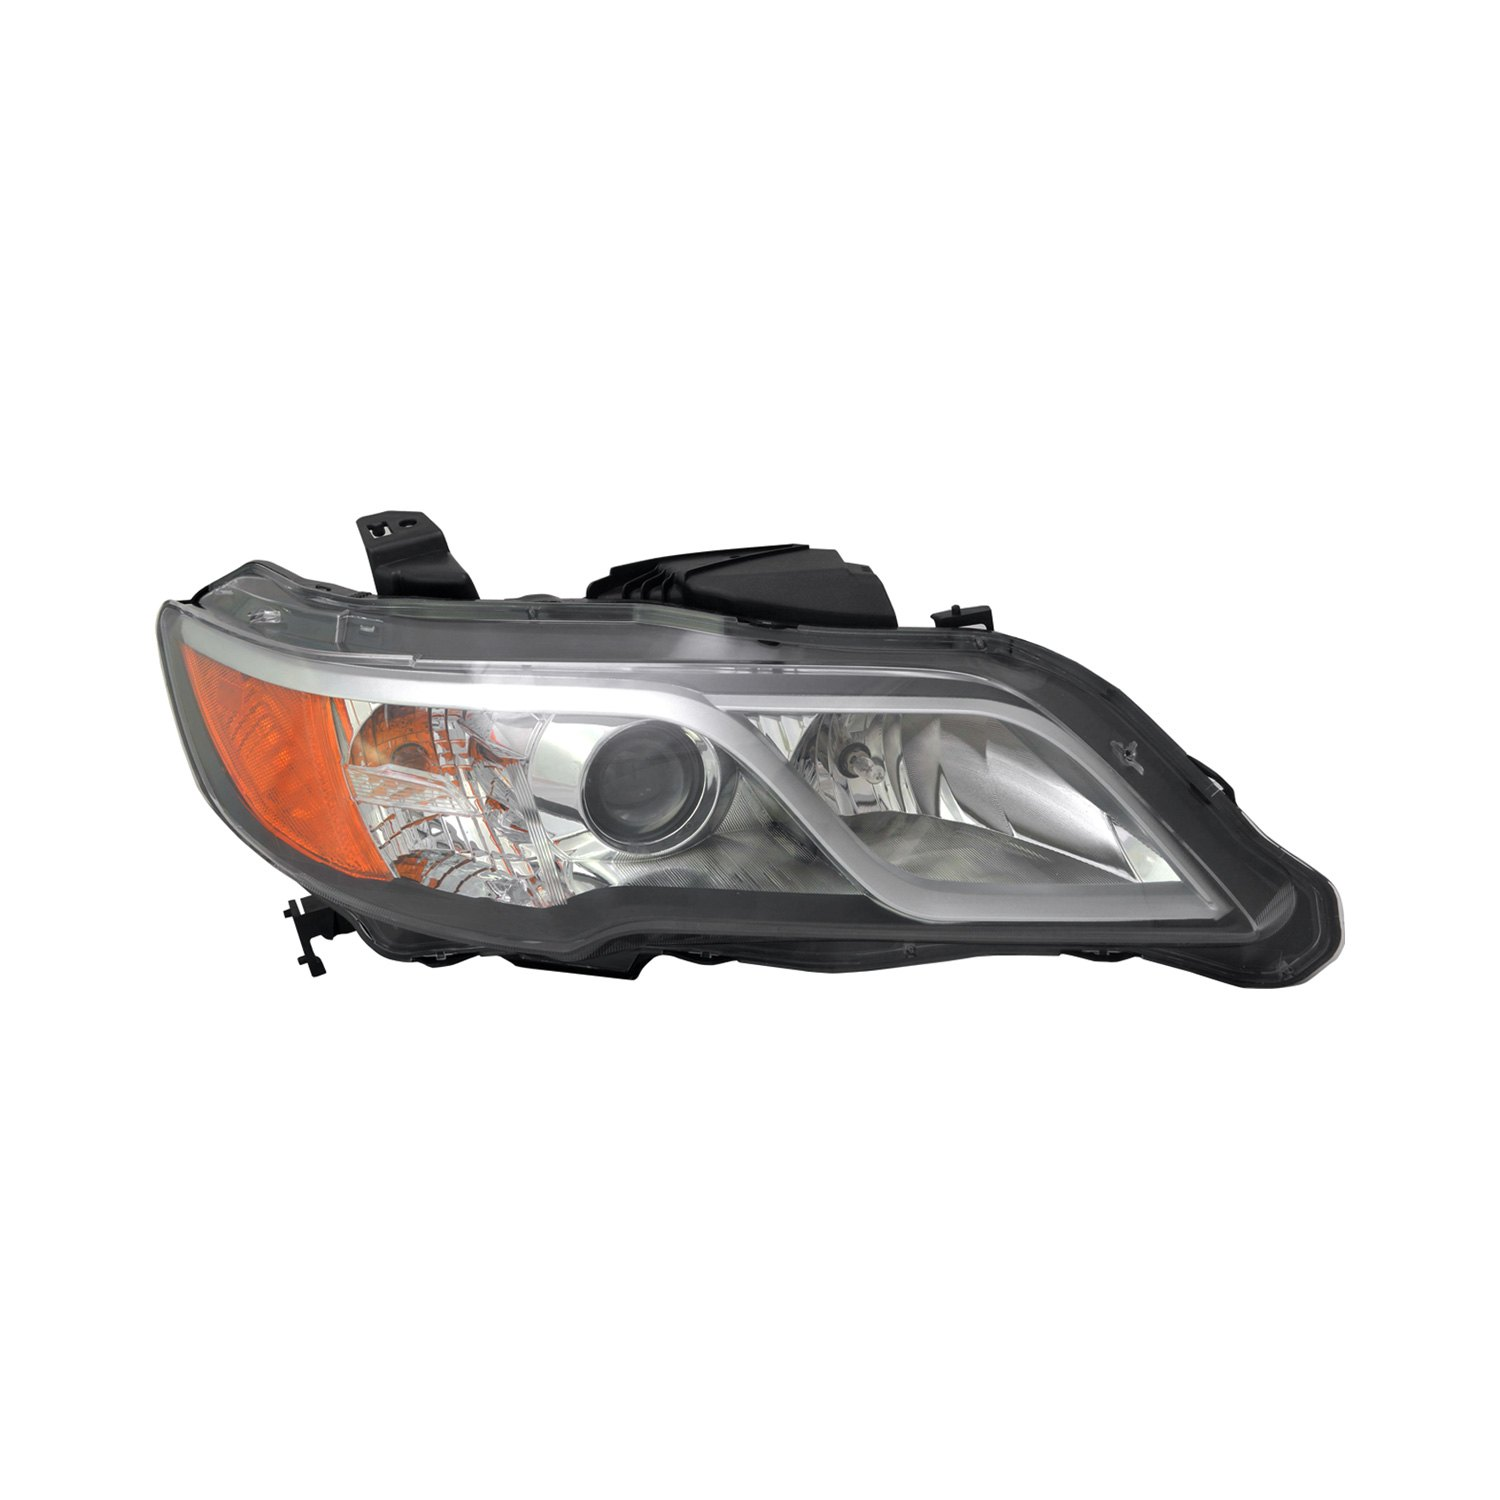 For Acura RDX 2013-2015 TruParts AC2503123C Passenger Side